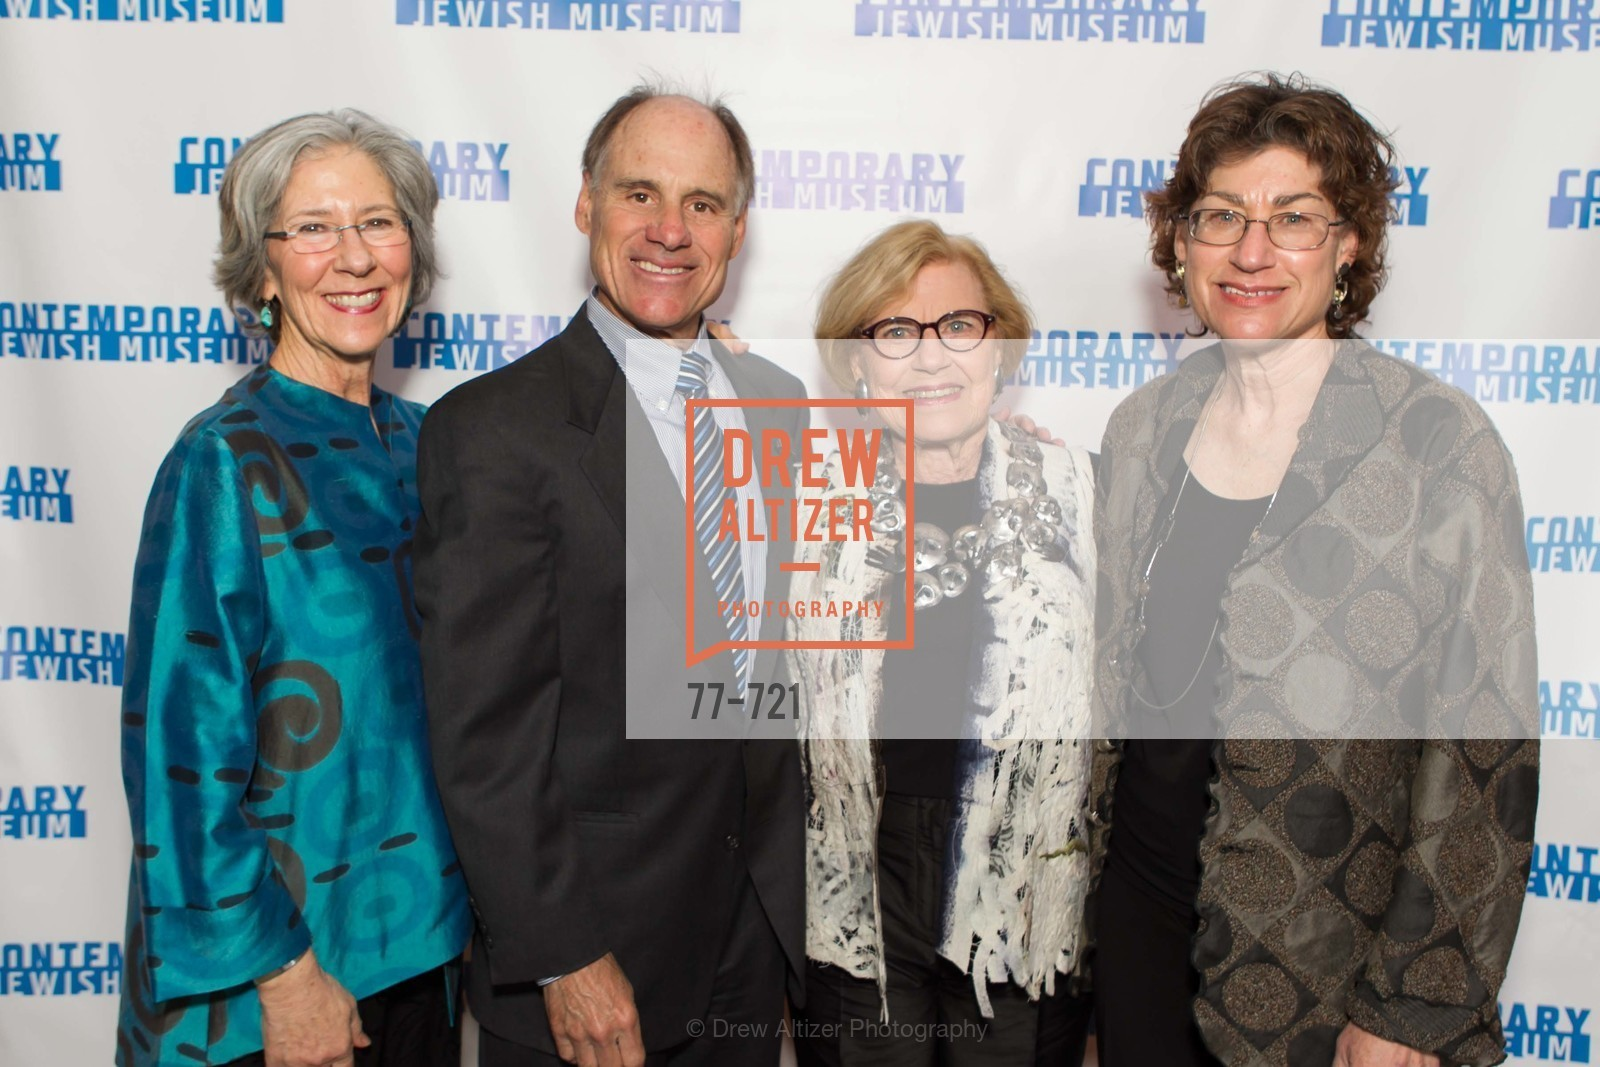 Shelly Saxe, Loren Saxe, Dorothy Saxe, Ellen Saliman, The 2015 Dorothy Saxe Invitational Celebration at the JEWISH MUSEUM, US, May 12th, 2015,Drew Altizer, Drew Altizer Photography, full-service agency, private events, San Francisco photographer, photographer california